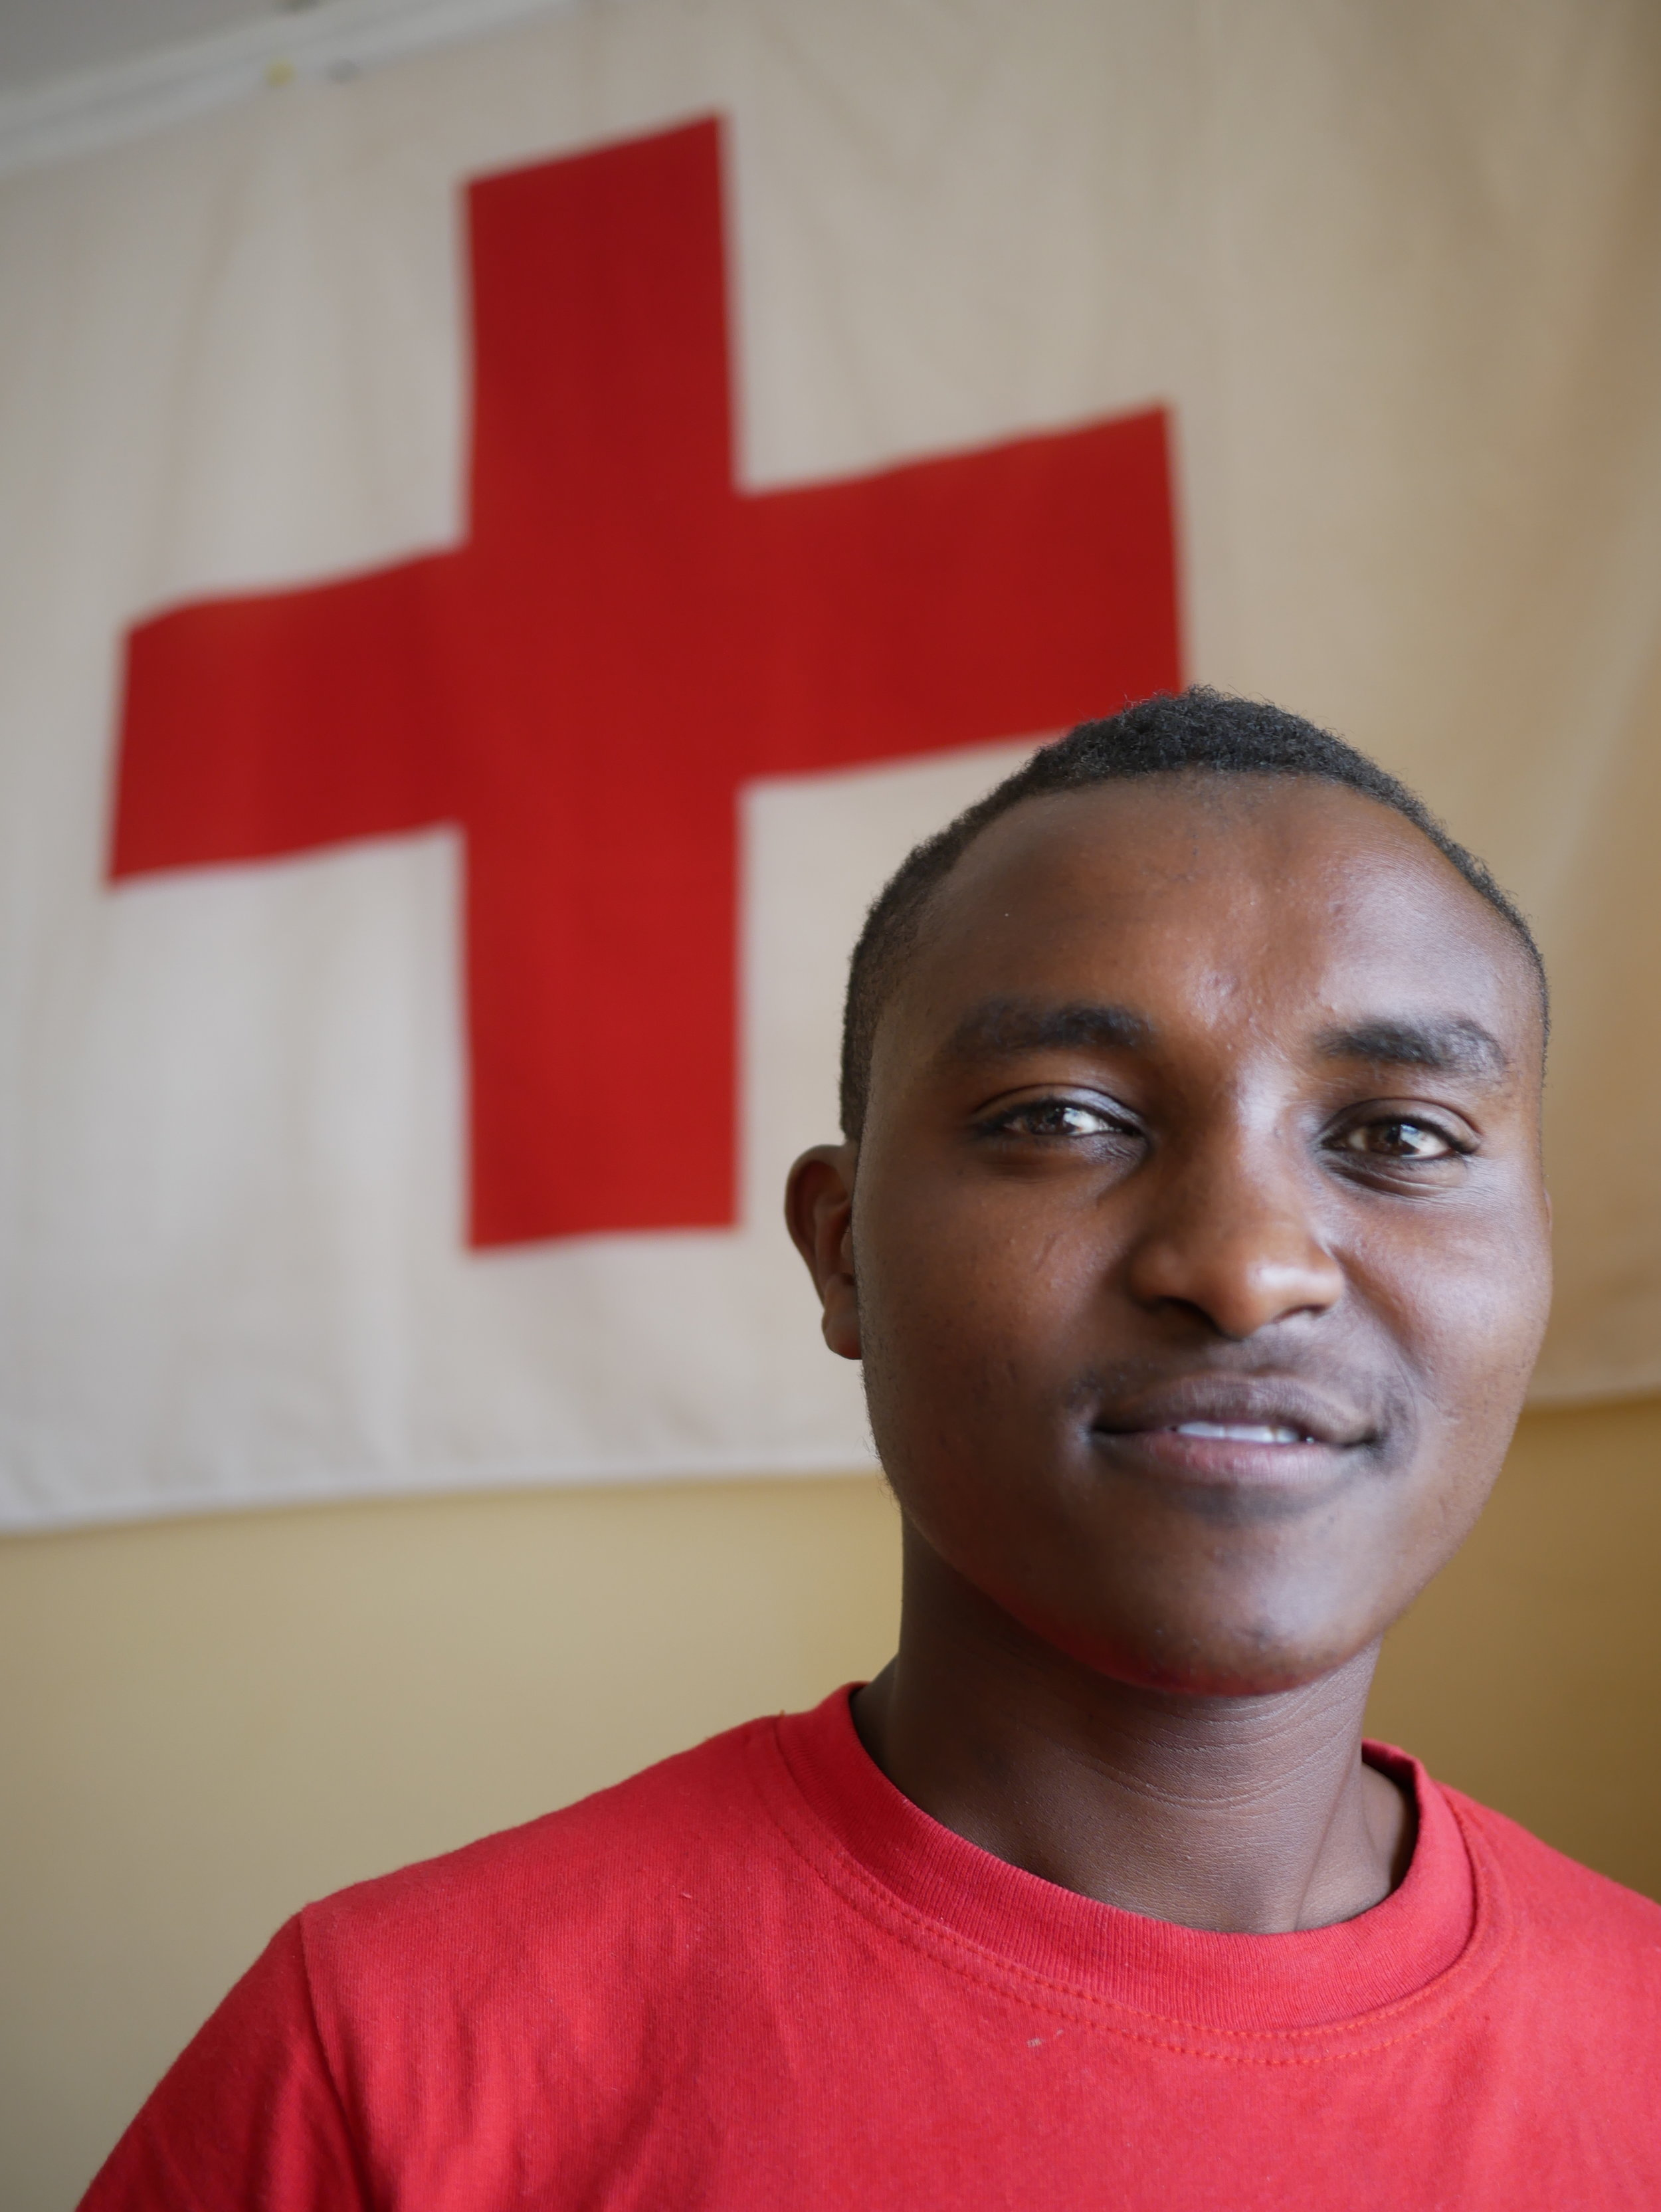 Vincent - Vincent is a Red Cross volunteer and member from Nanyuki. He has a lot of experience from being active in a range of organizations.- I love socializing, facilitating team-building sessions and organizing camps and hikes.